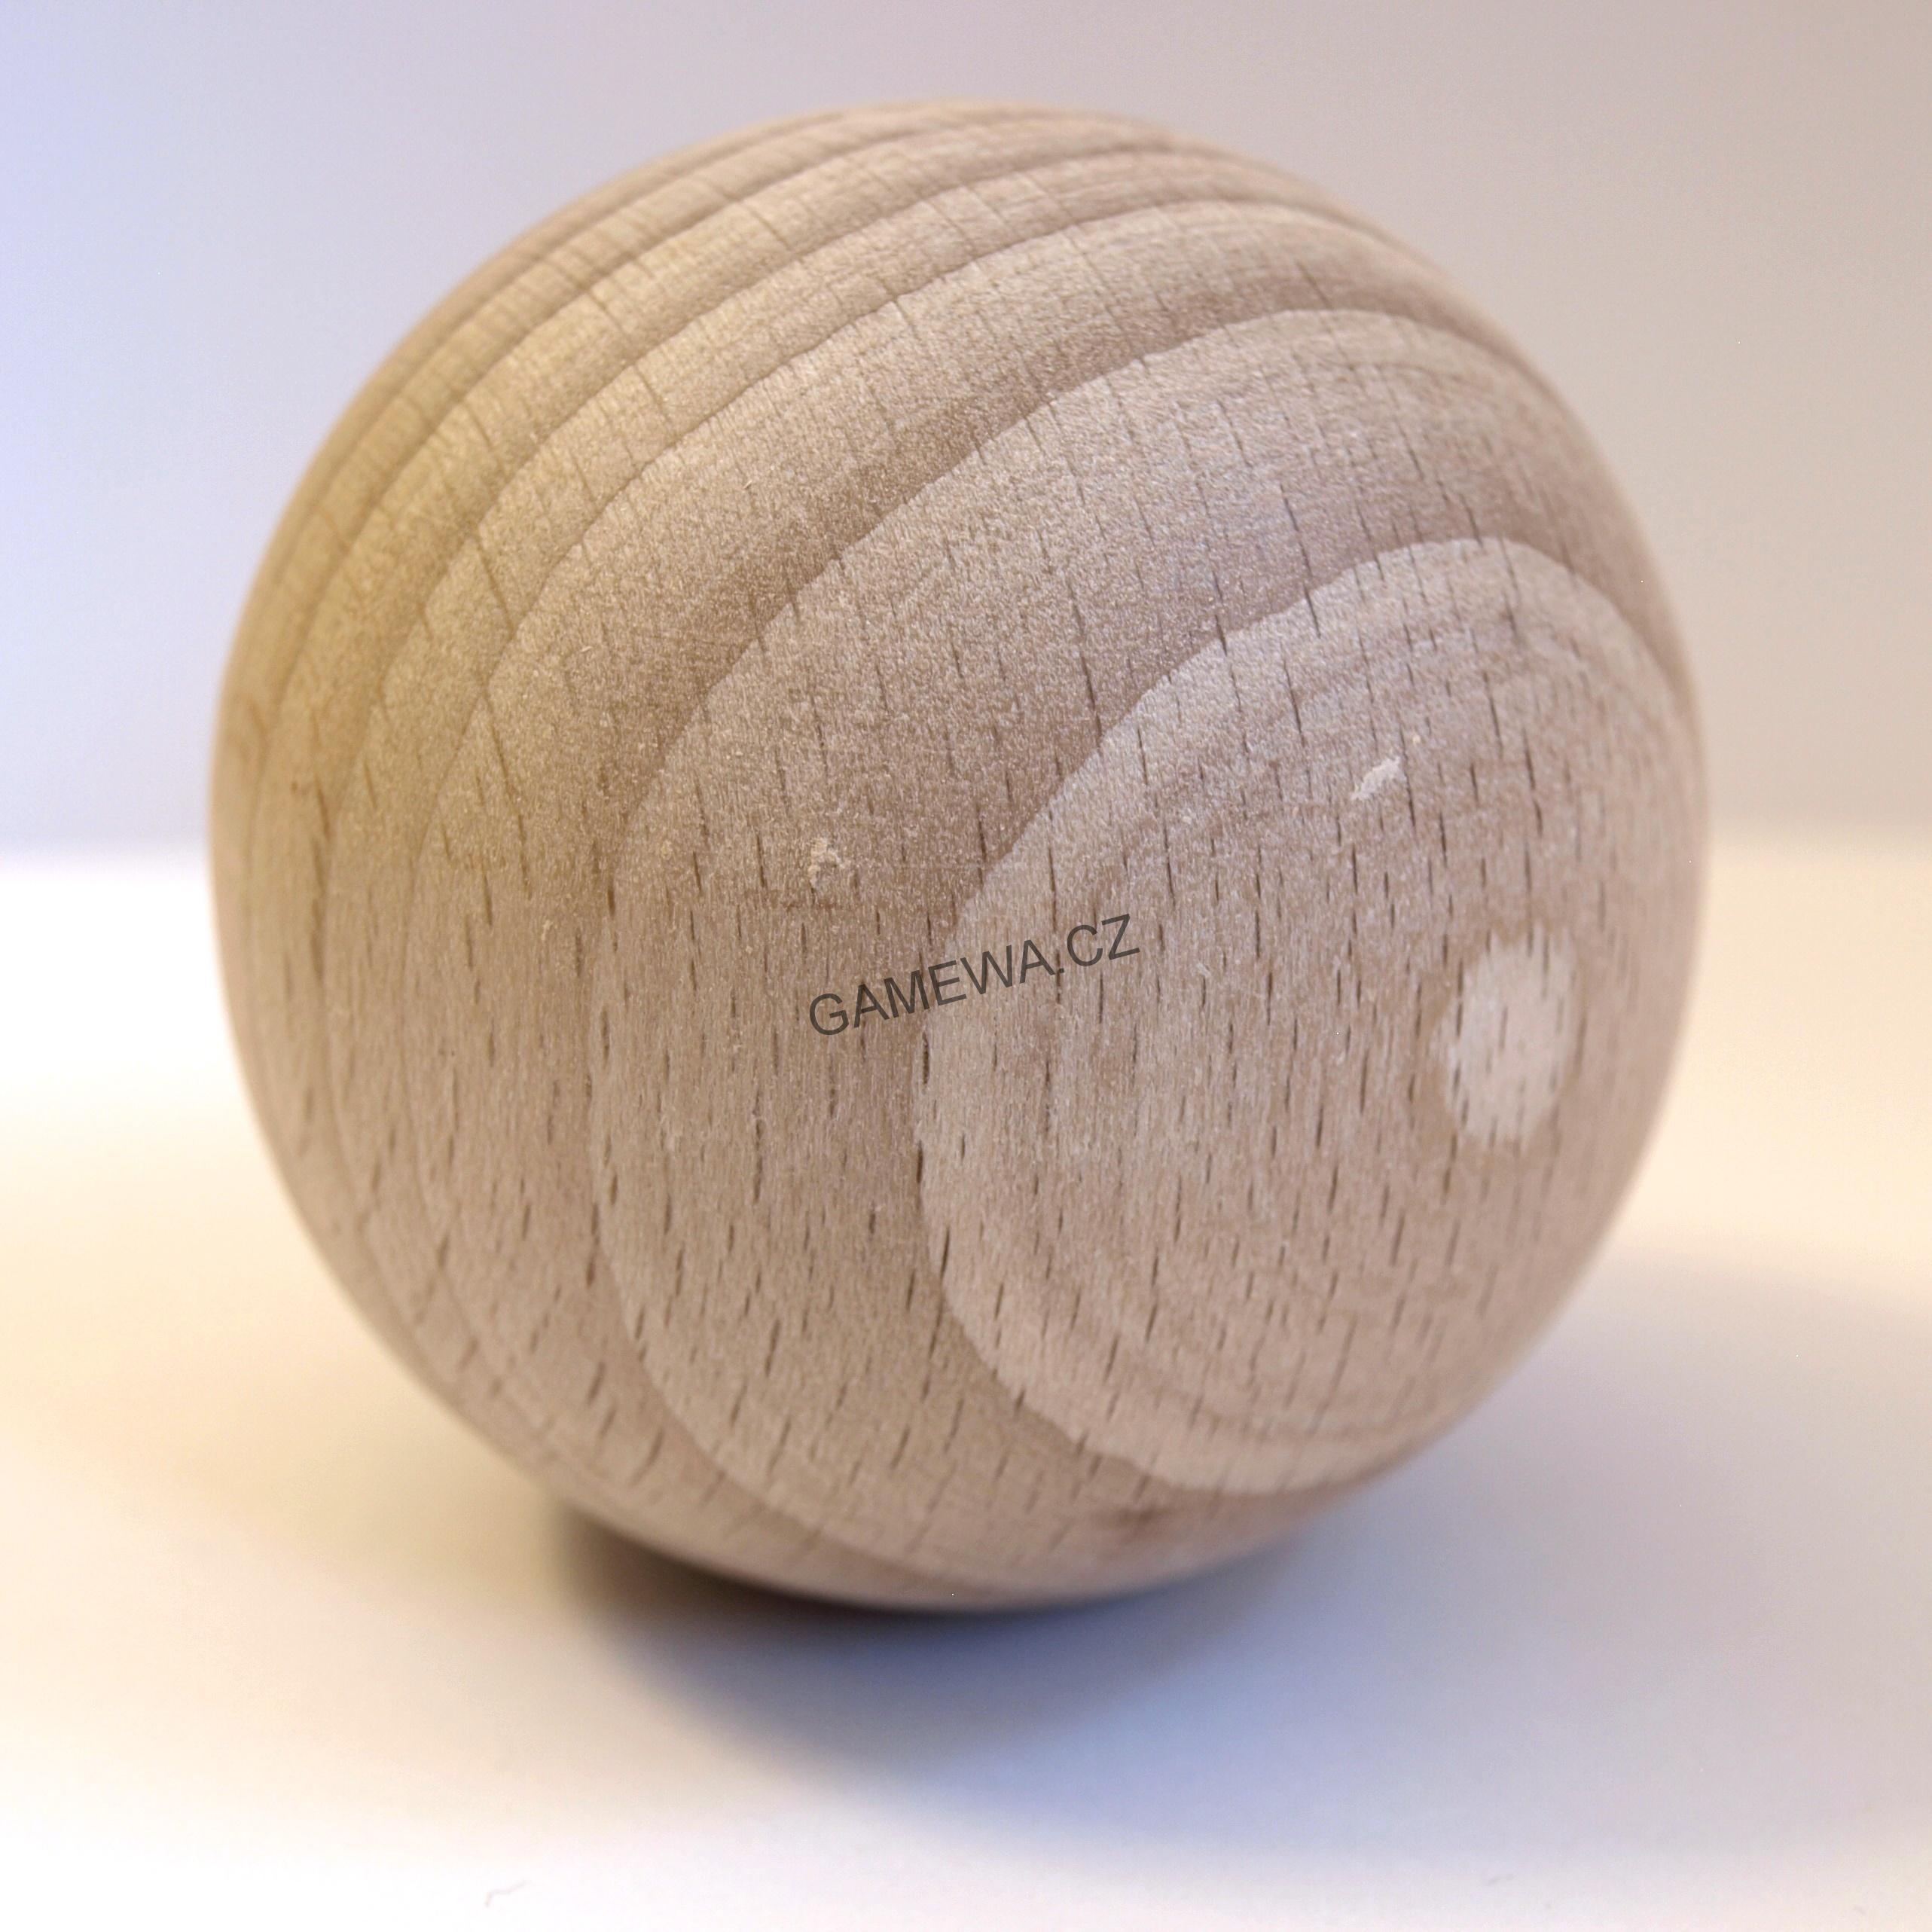 60mm  Koule natural 1ks  GAMEWA Extra BUK